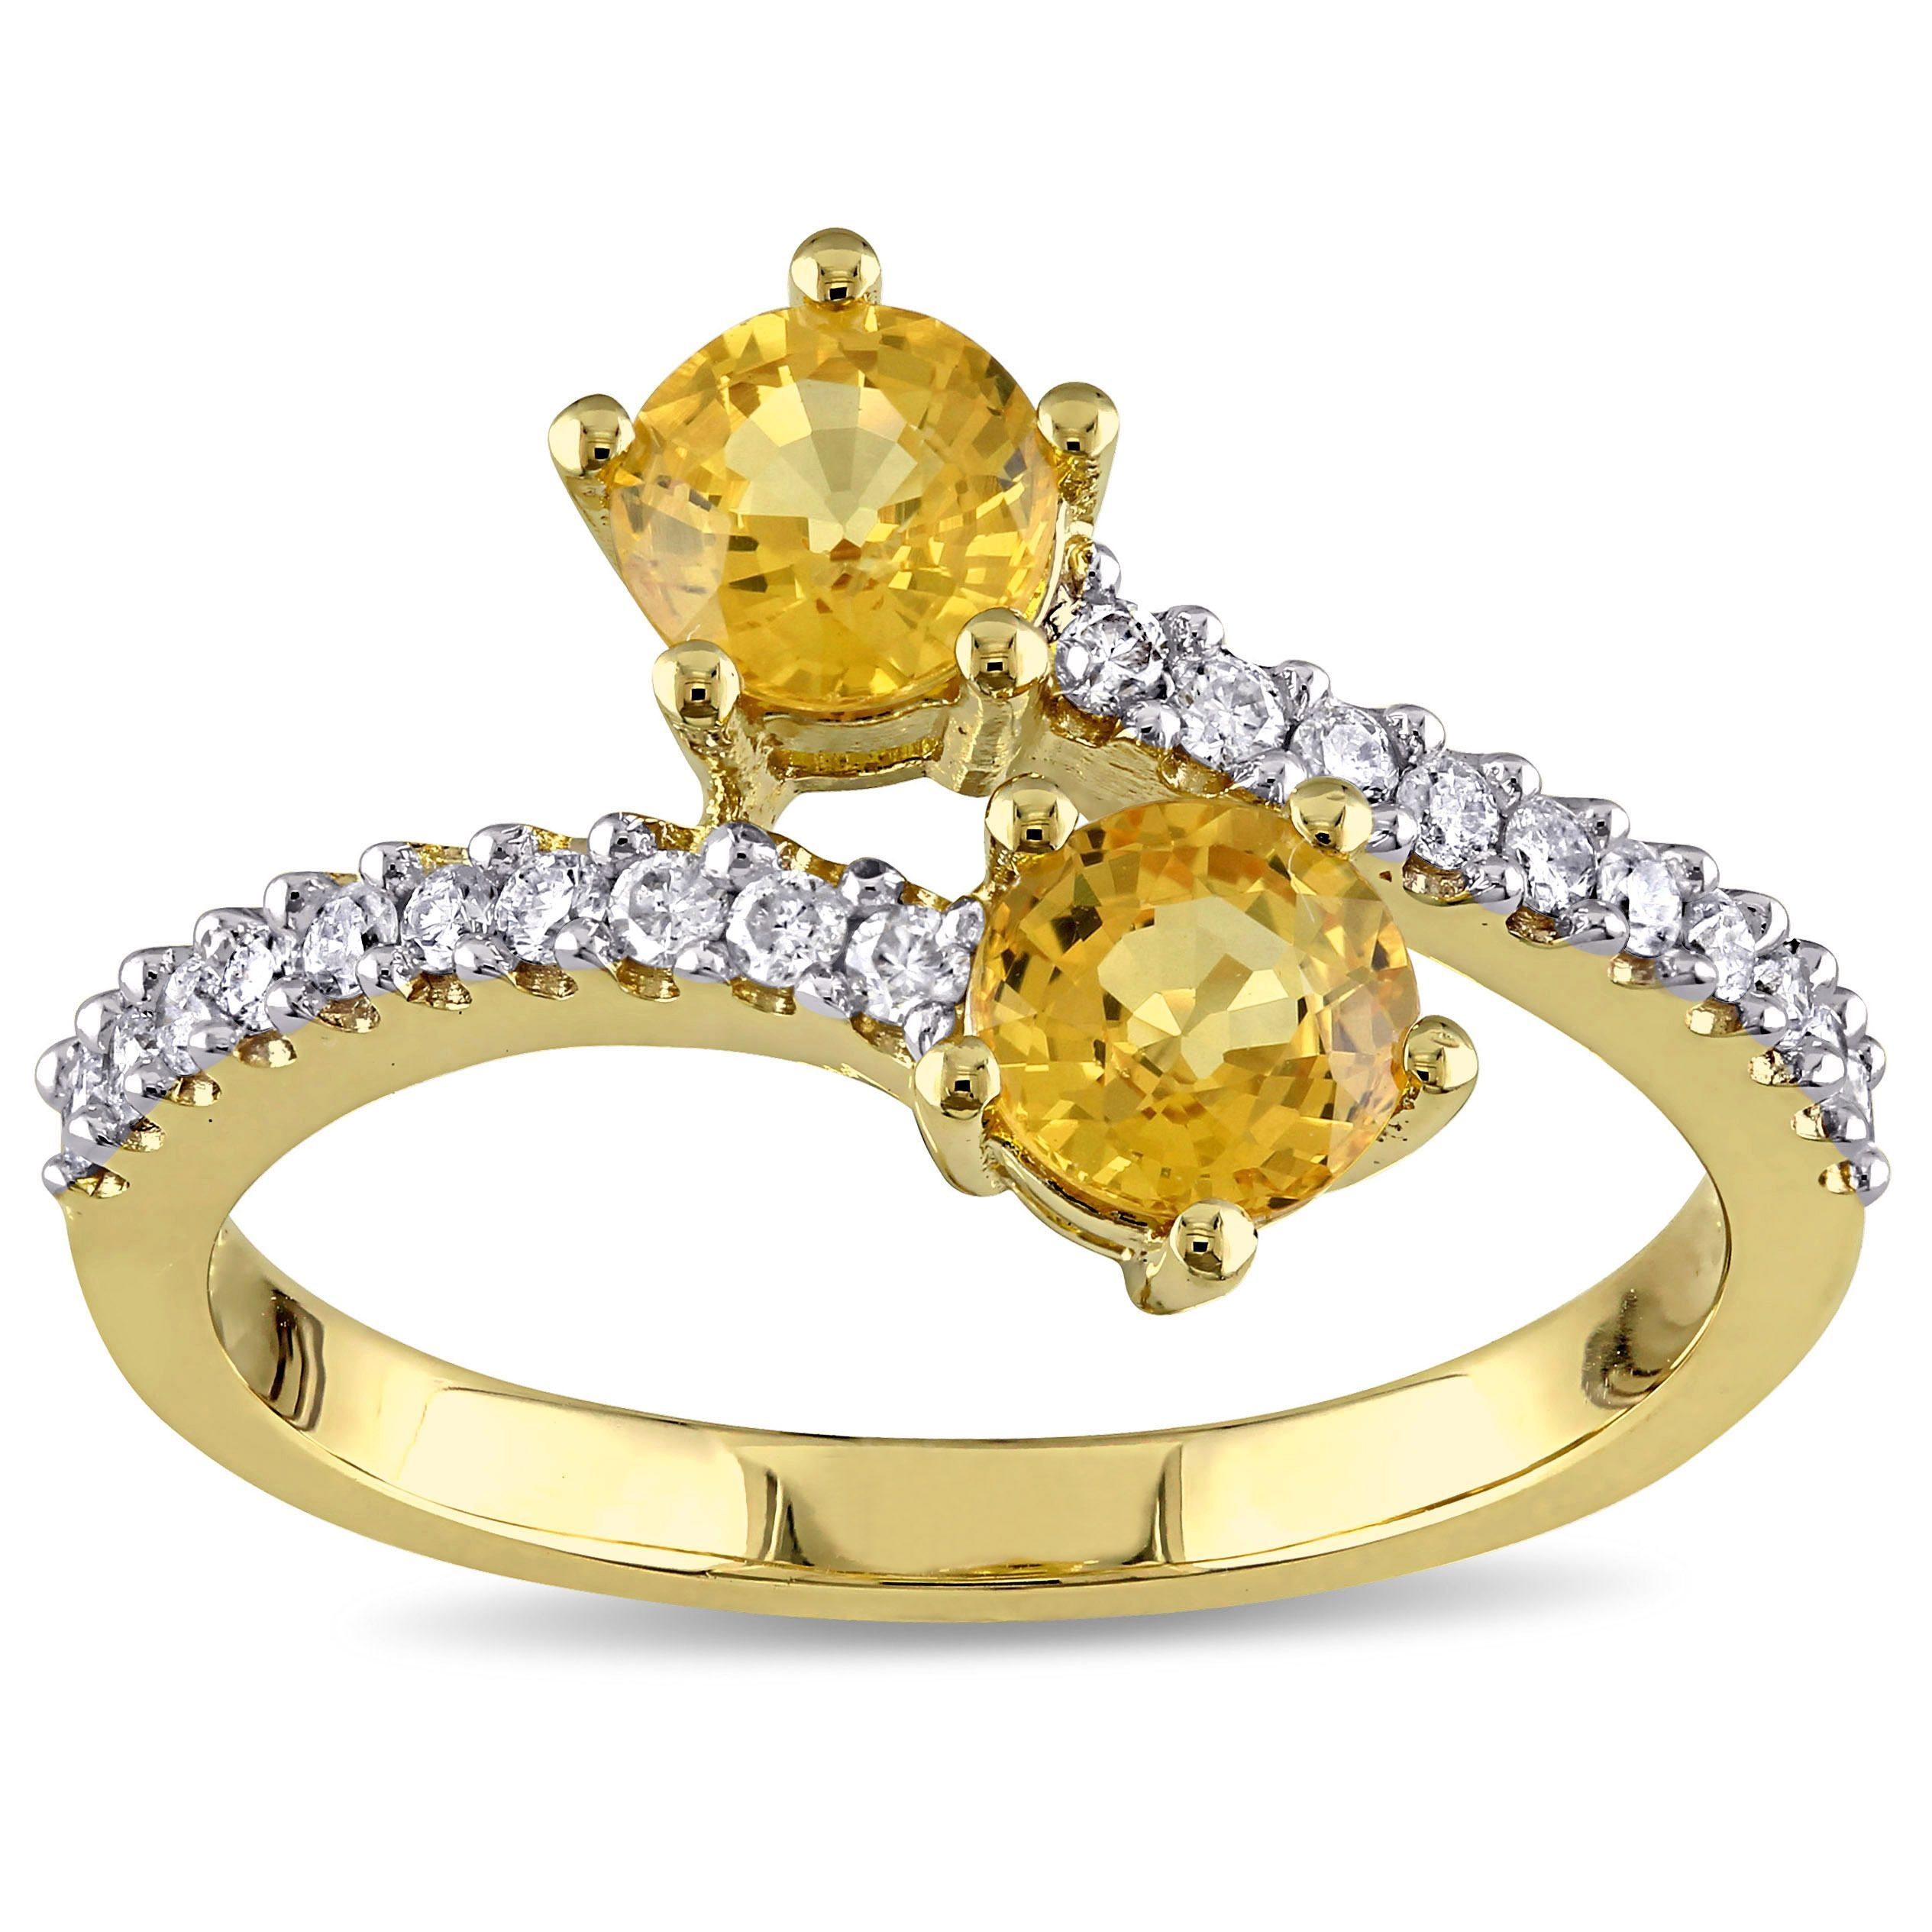 Miadora signature collection 14k white gold 1ct tdw diamond double row - Miadora Signature Collection 10k Yellow Gold Yellow Sapphire And 1 5ct Tdw Diamond Bypass Ring G H I2 I3 Size 10 Women S